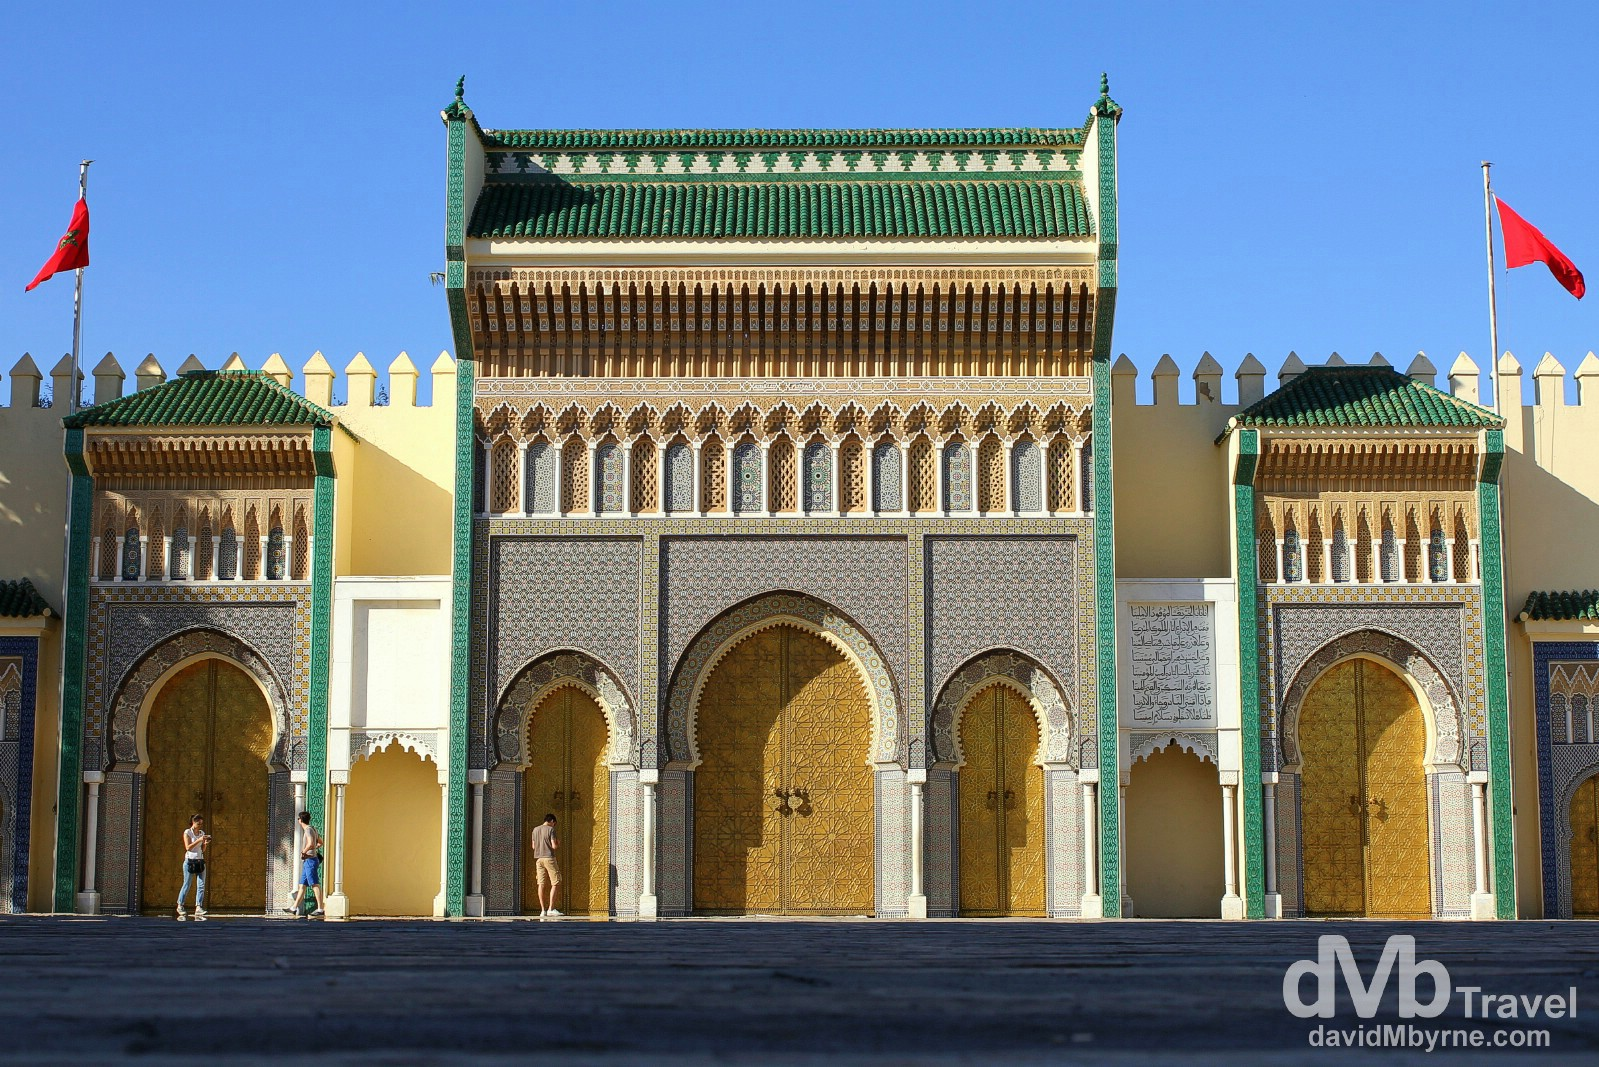 The Royal Palace, Fes, Morocco